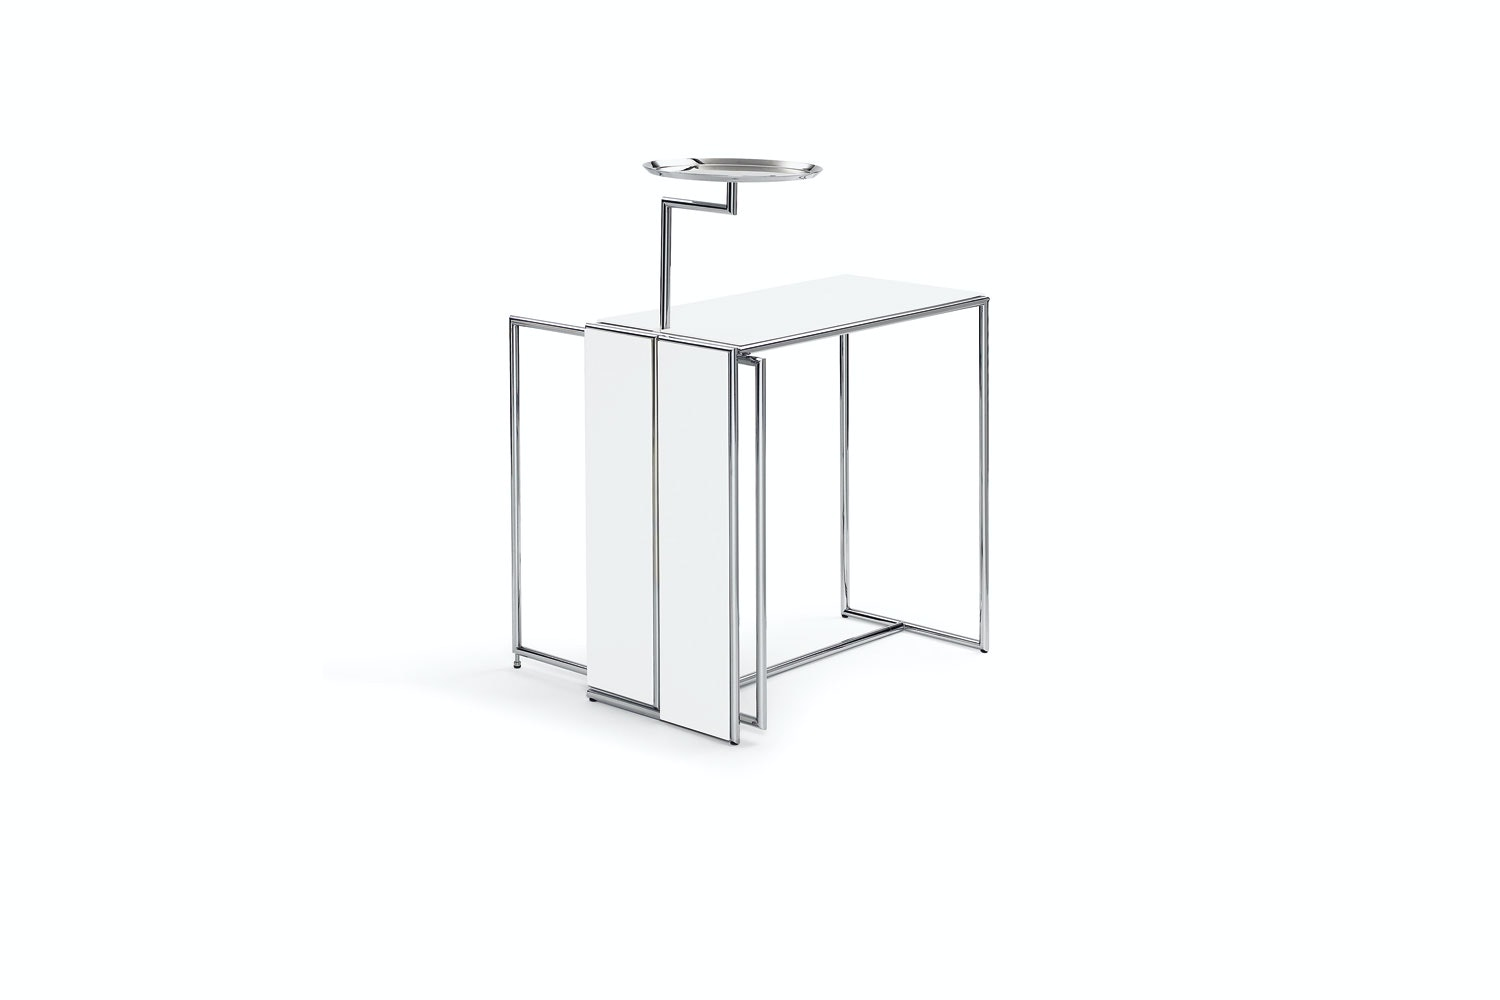 Rivoli by Eileen Gray for ClassiCon